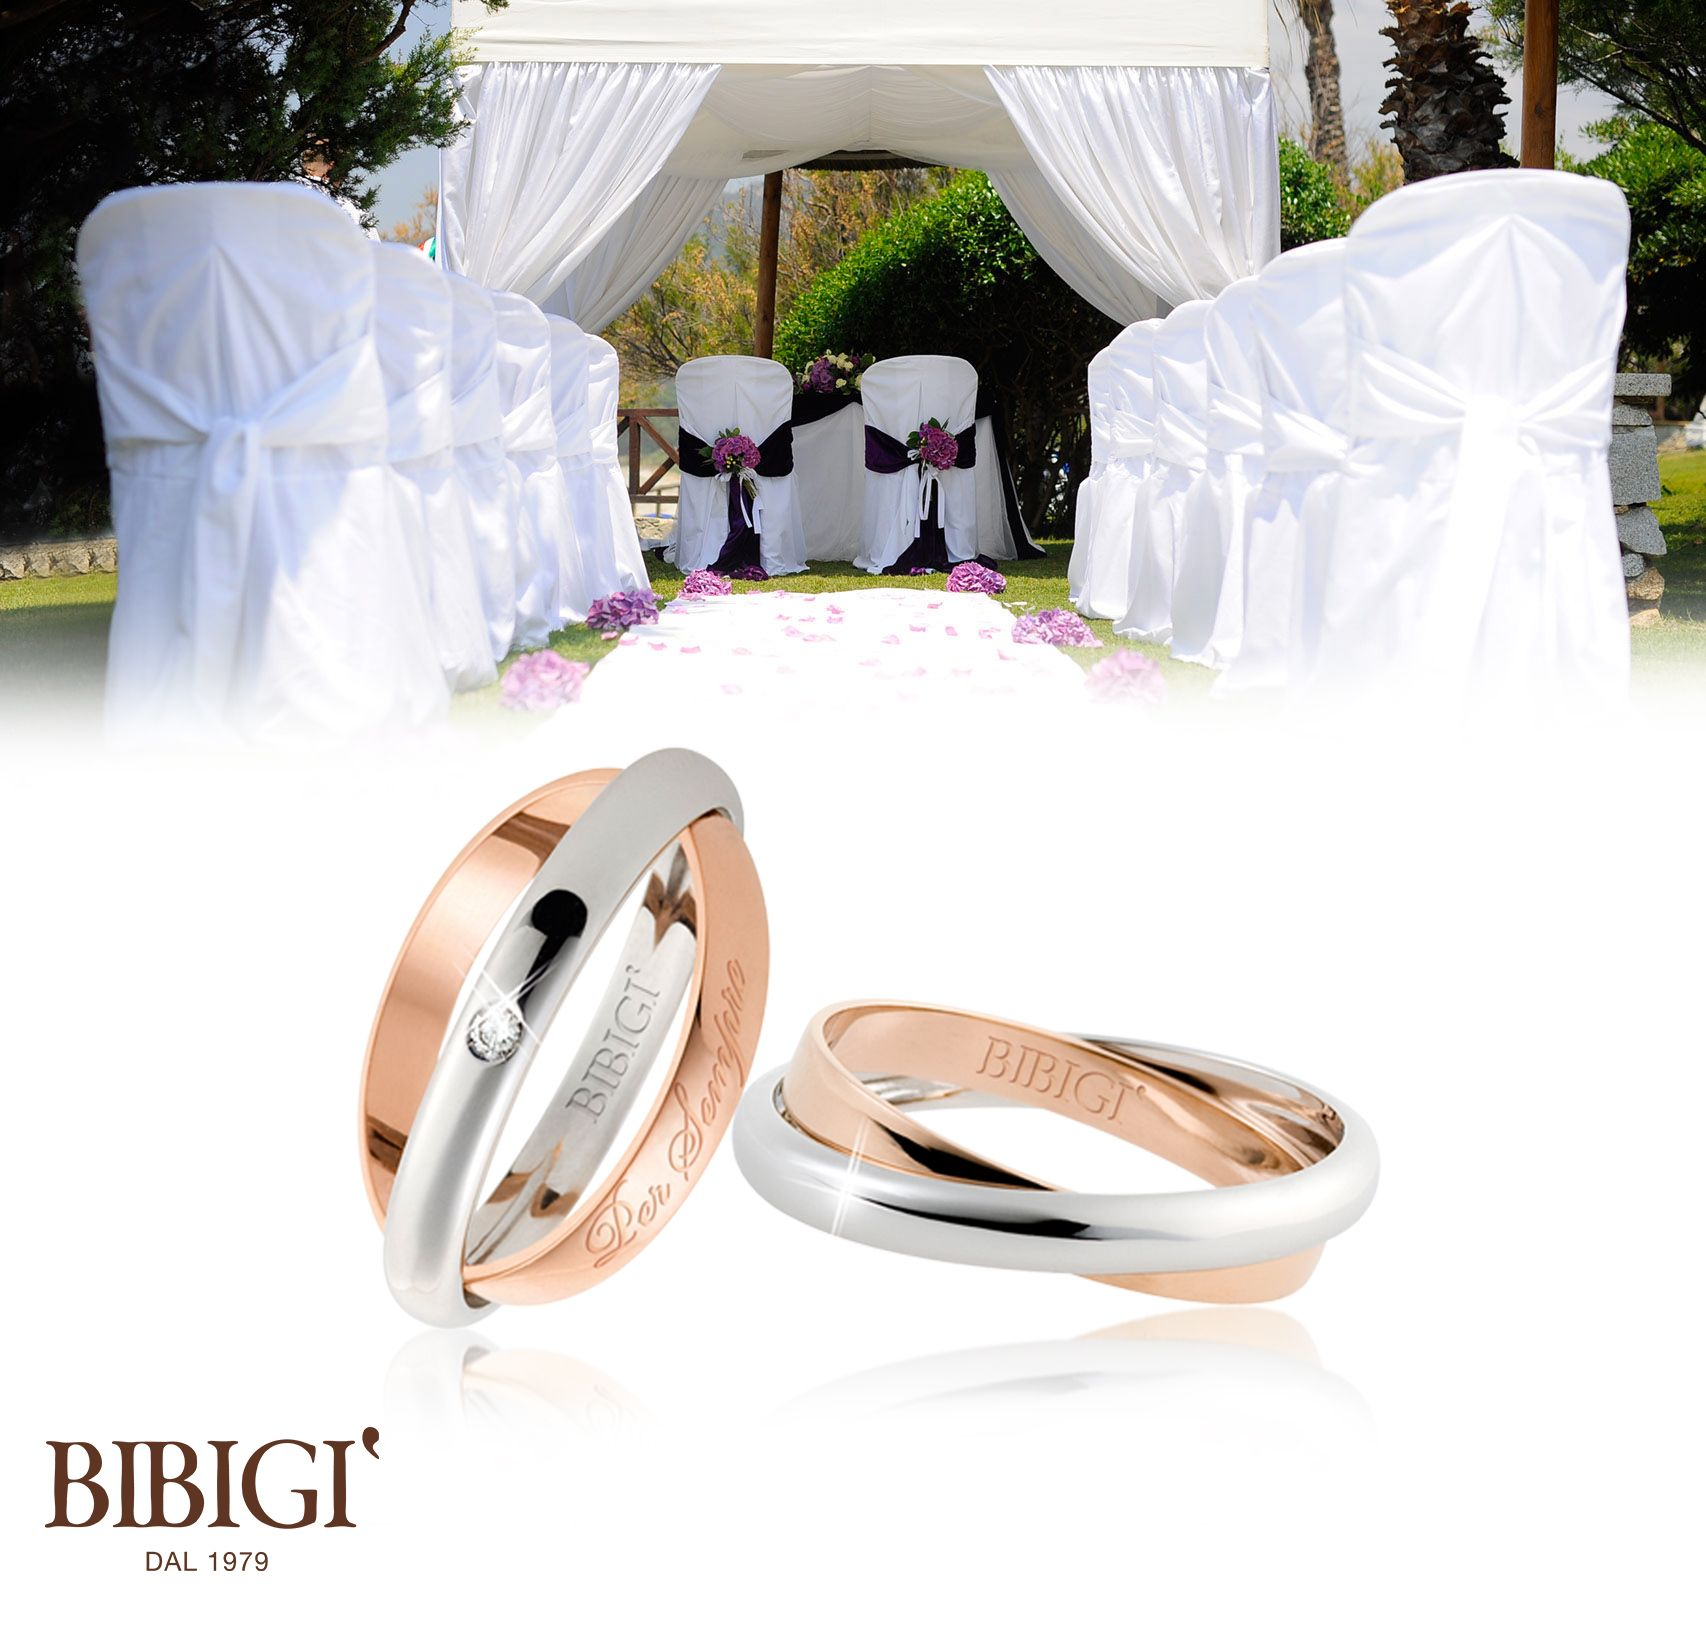 #Bibigì #weddingRing White gold ring with diamonds. A perfect mix of classic and contemporary point out the beauty.